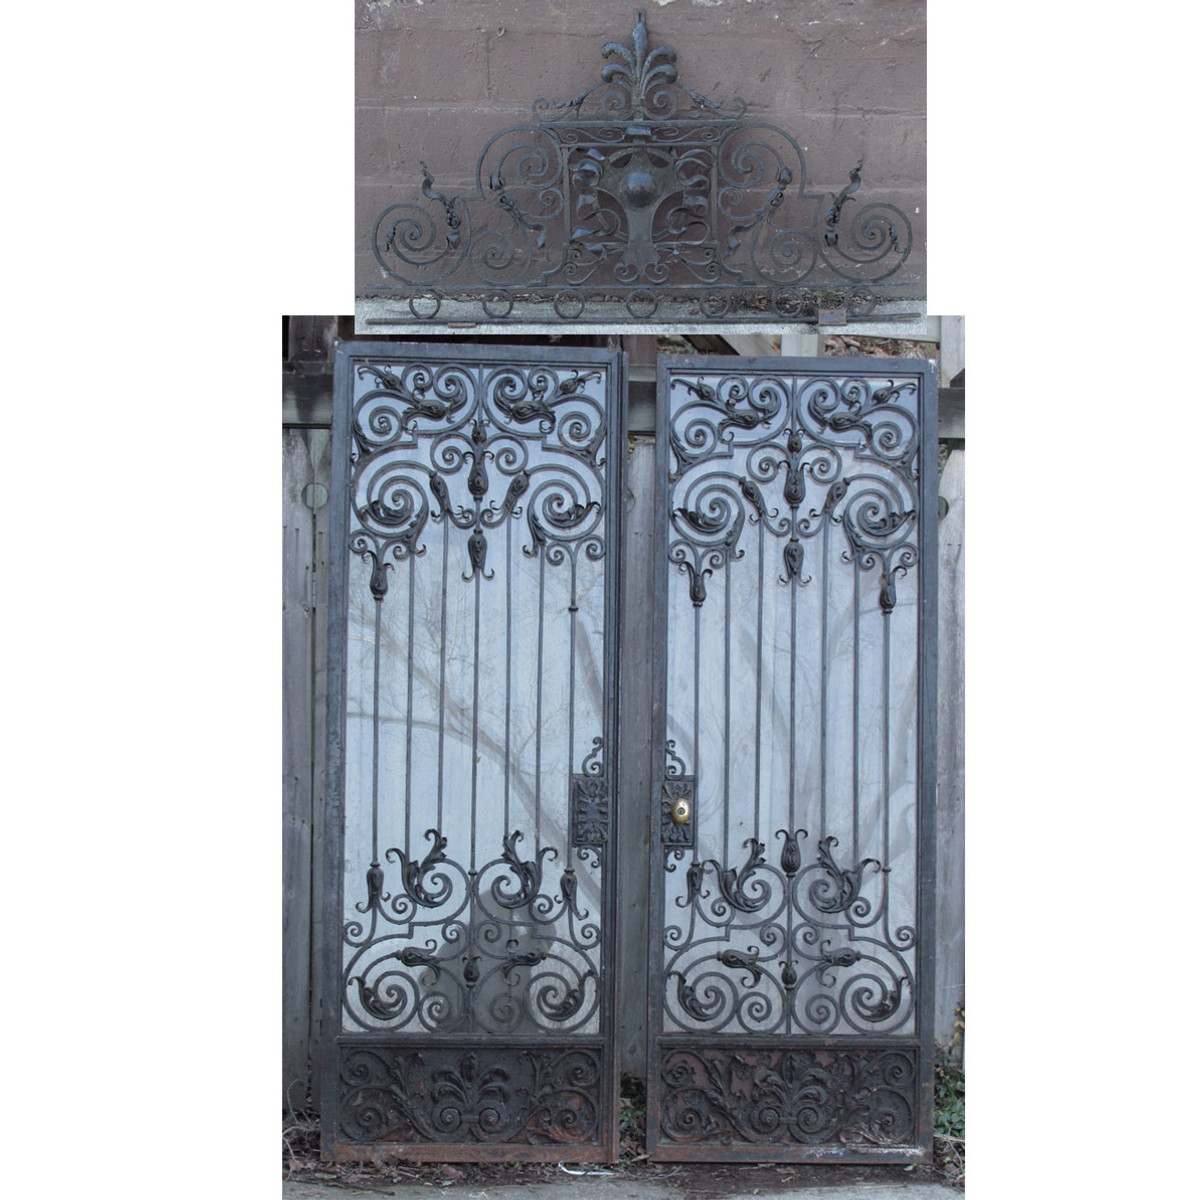 D15020 - Pair of Antique Wrought Iron Doors 60